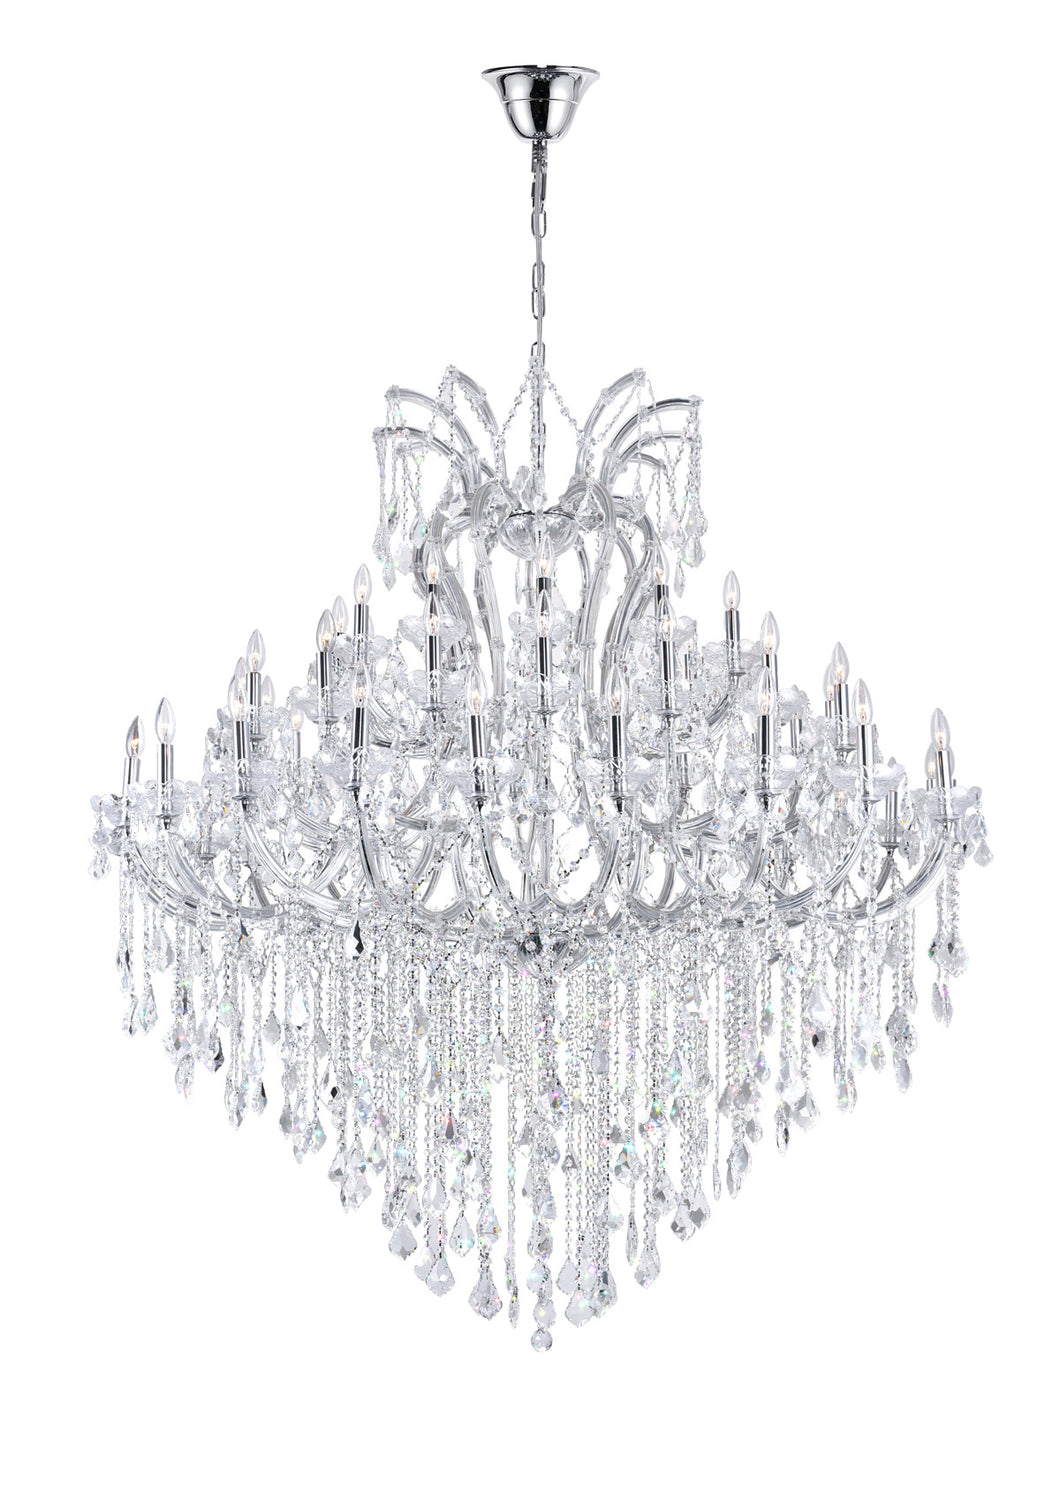 55 Light Up Chandelier with Chrome finish